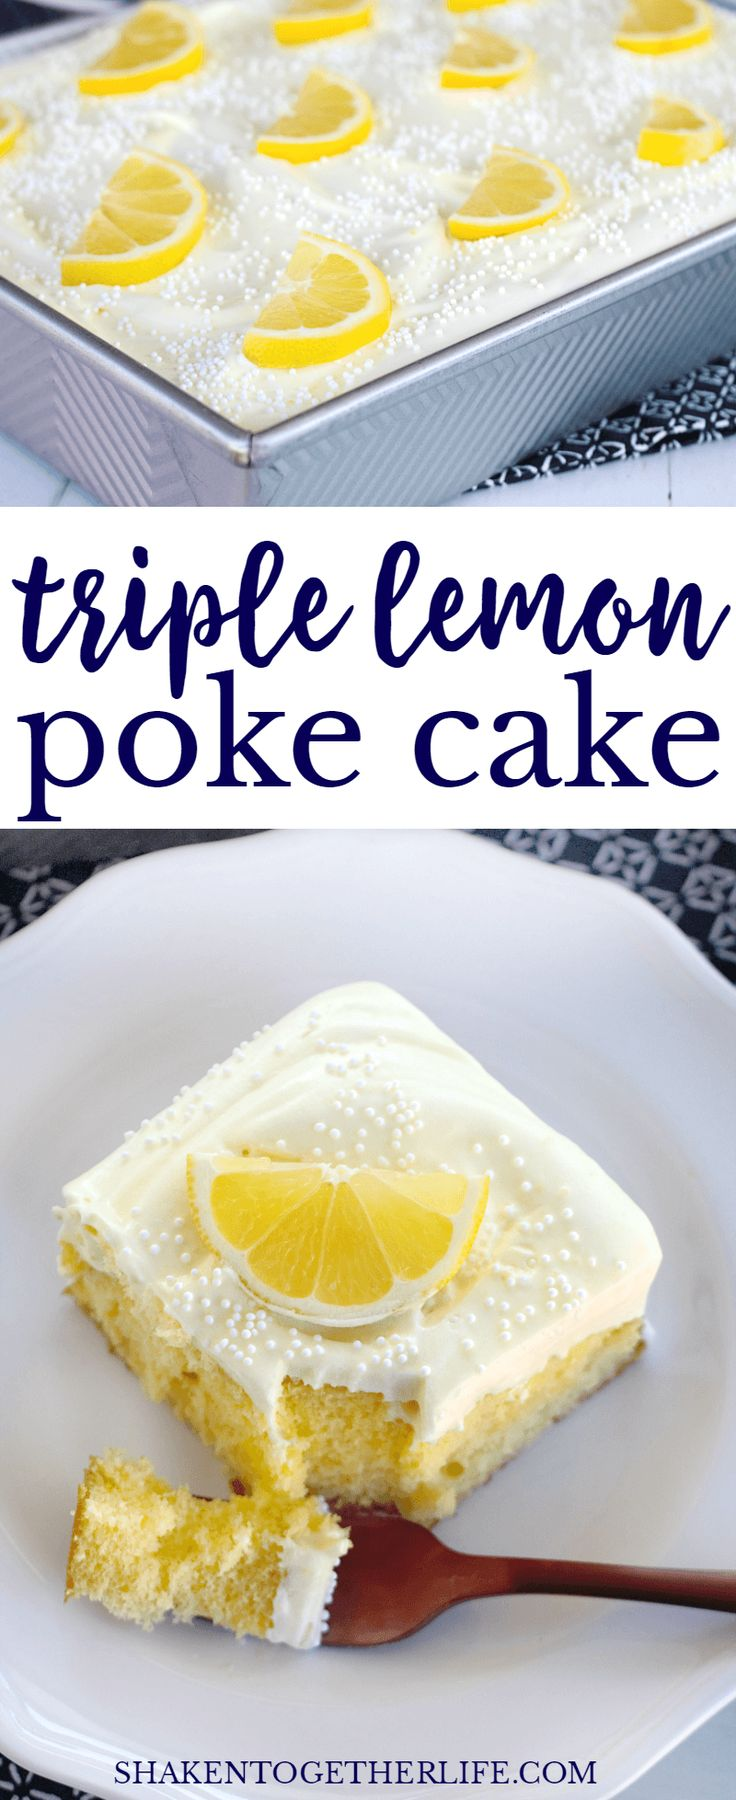 Lemon lovers, this Triple Lemon Poke Cake is for you! This all lemon dessert is bright, easy and completely irresistible!